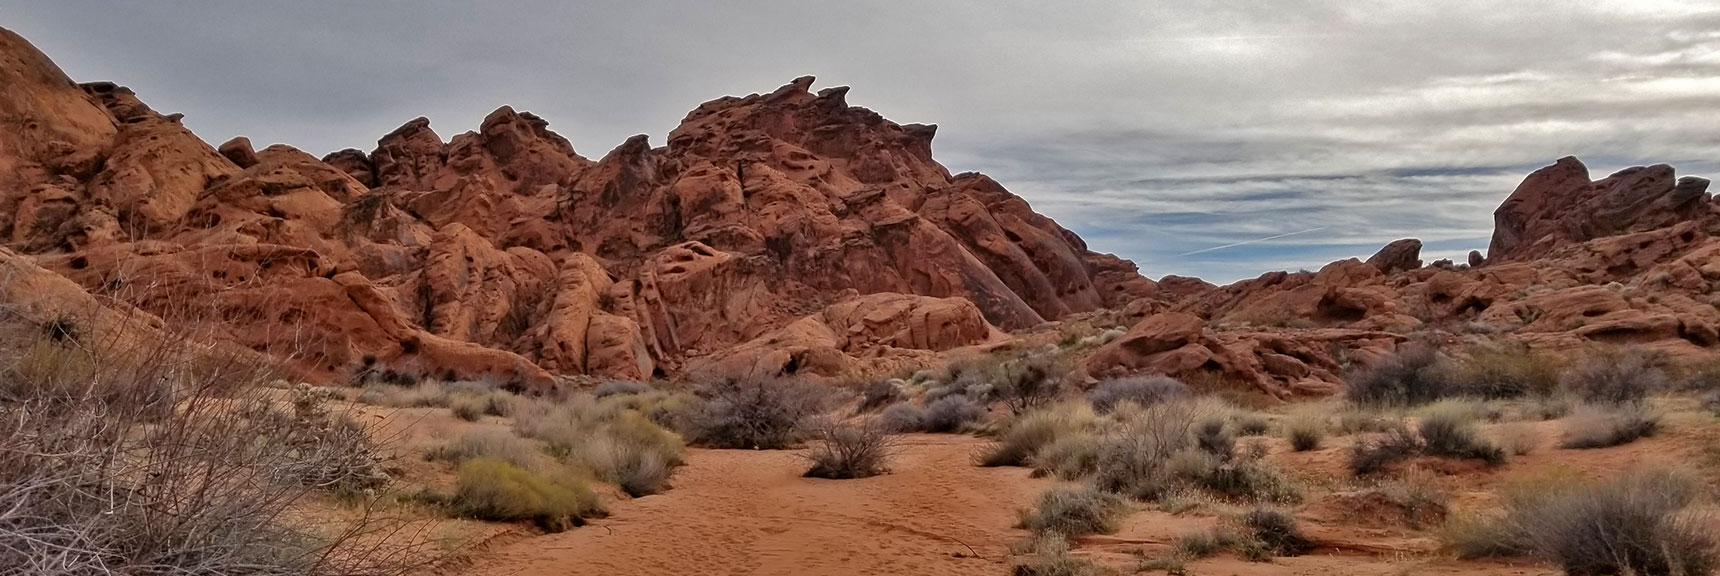 Without the Plants This Is the Planet Mars in Fire Canyon in Valley of Fire State Park, Nevada